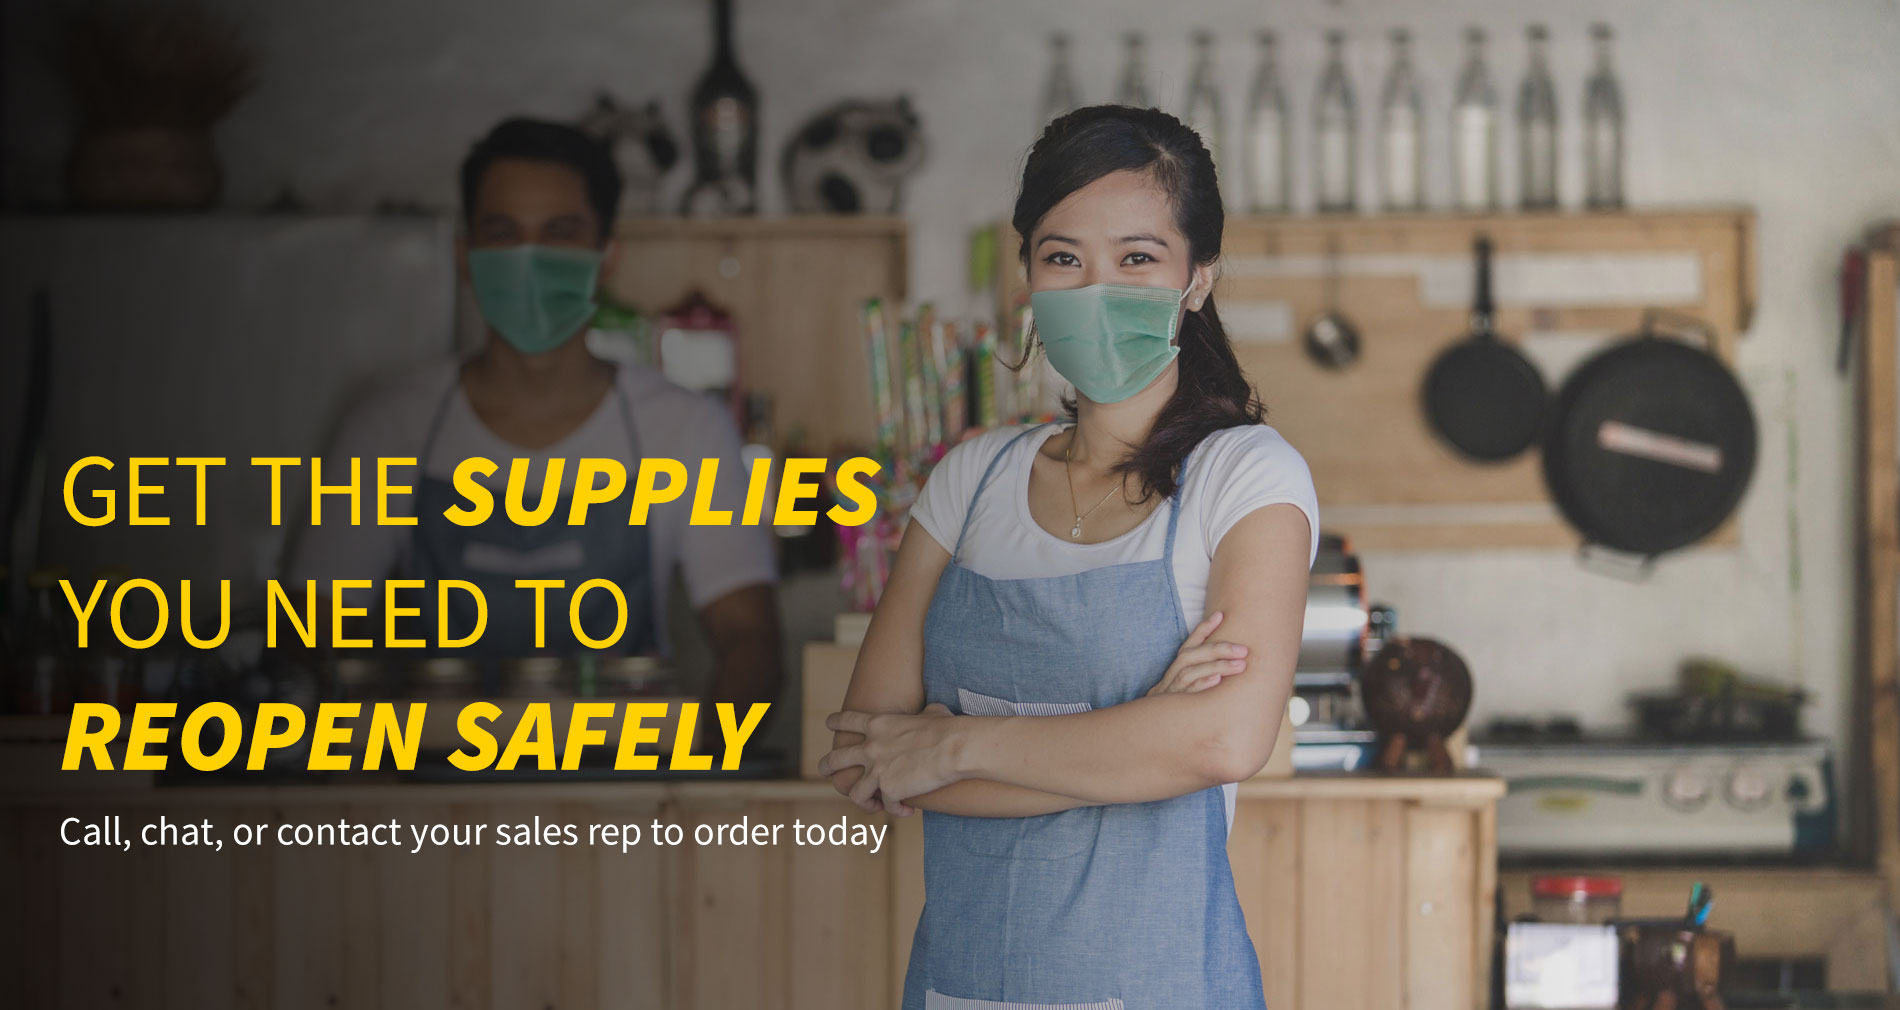 Safety supplies, PPE and more